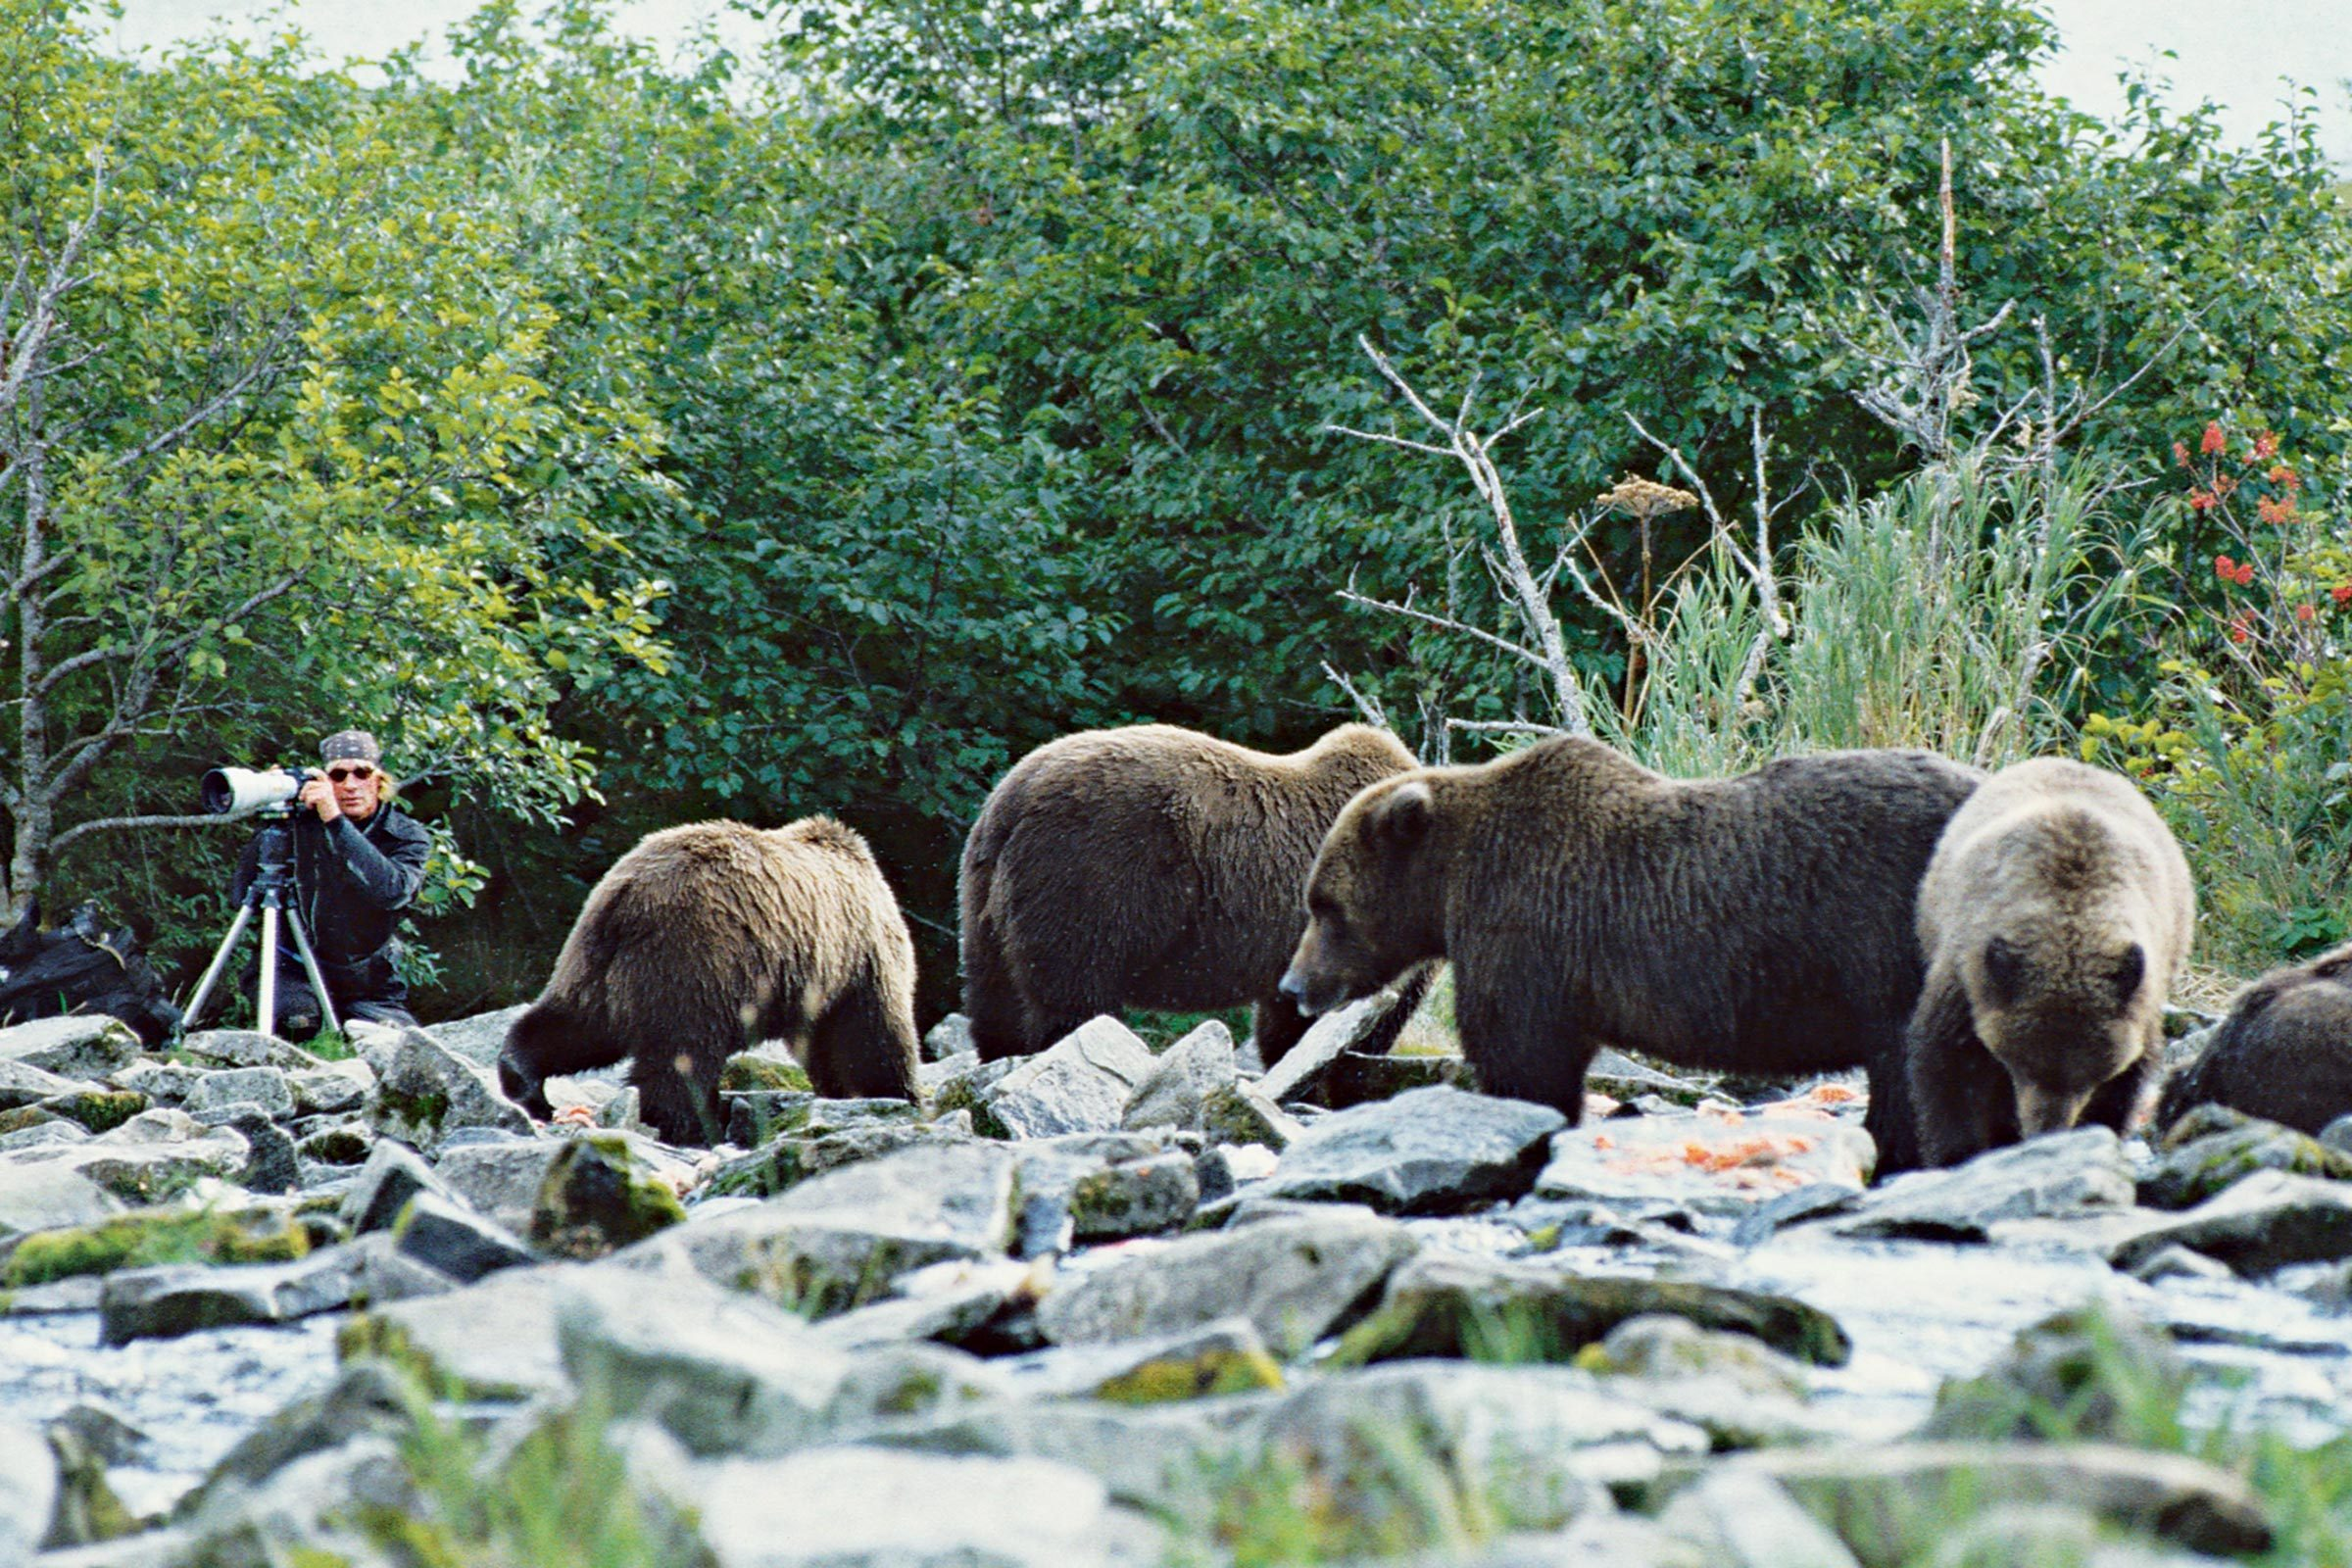 Treadwell photographing near group of bears